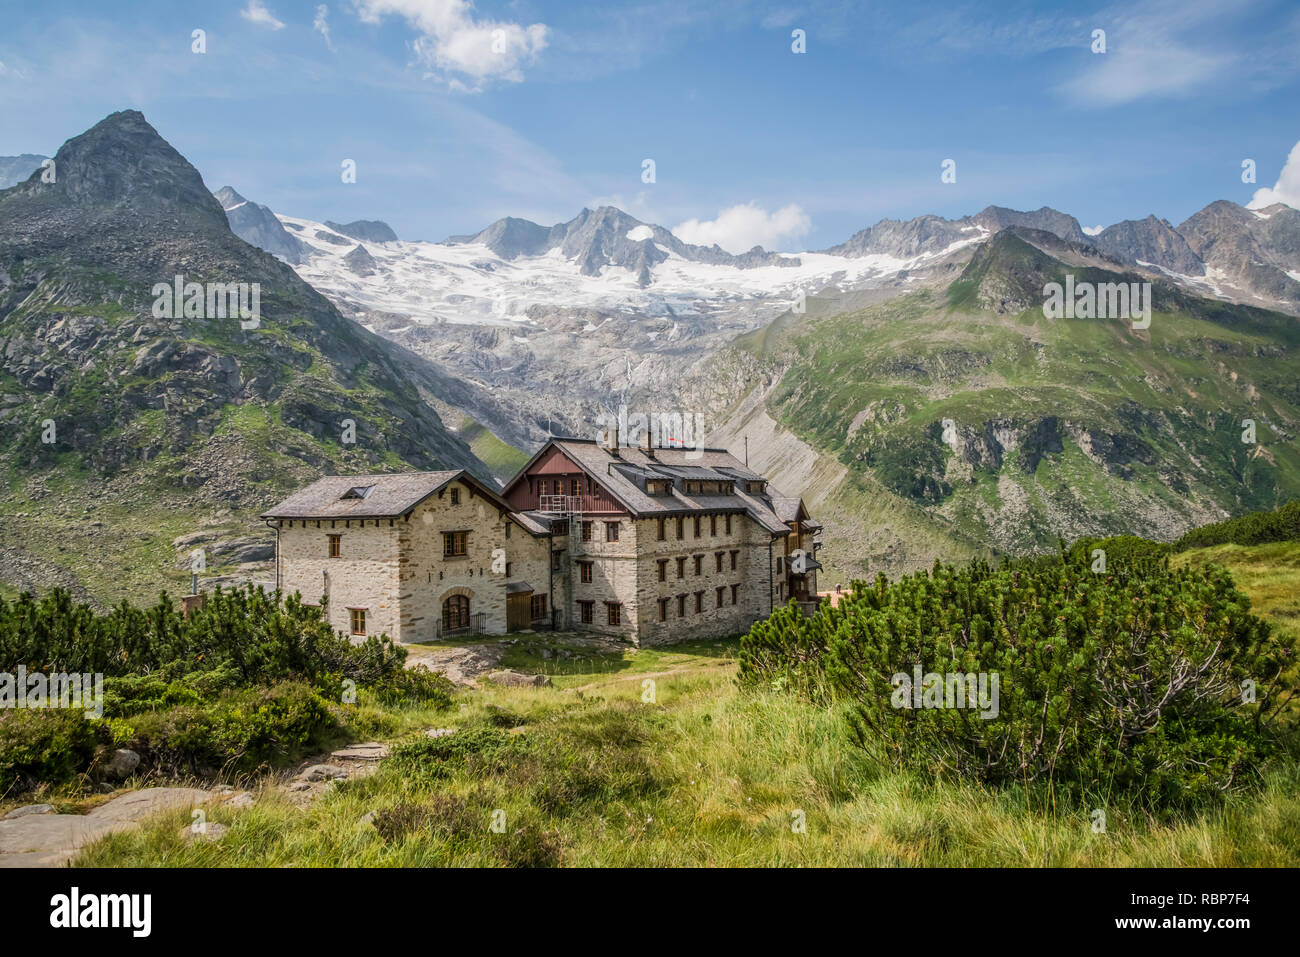 Berliner Hut mountain refuge in the Zillertal Alps of the Tyrol near the resort town of Mayrhofen in Austria Stock Photo